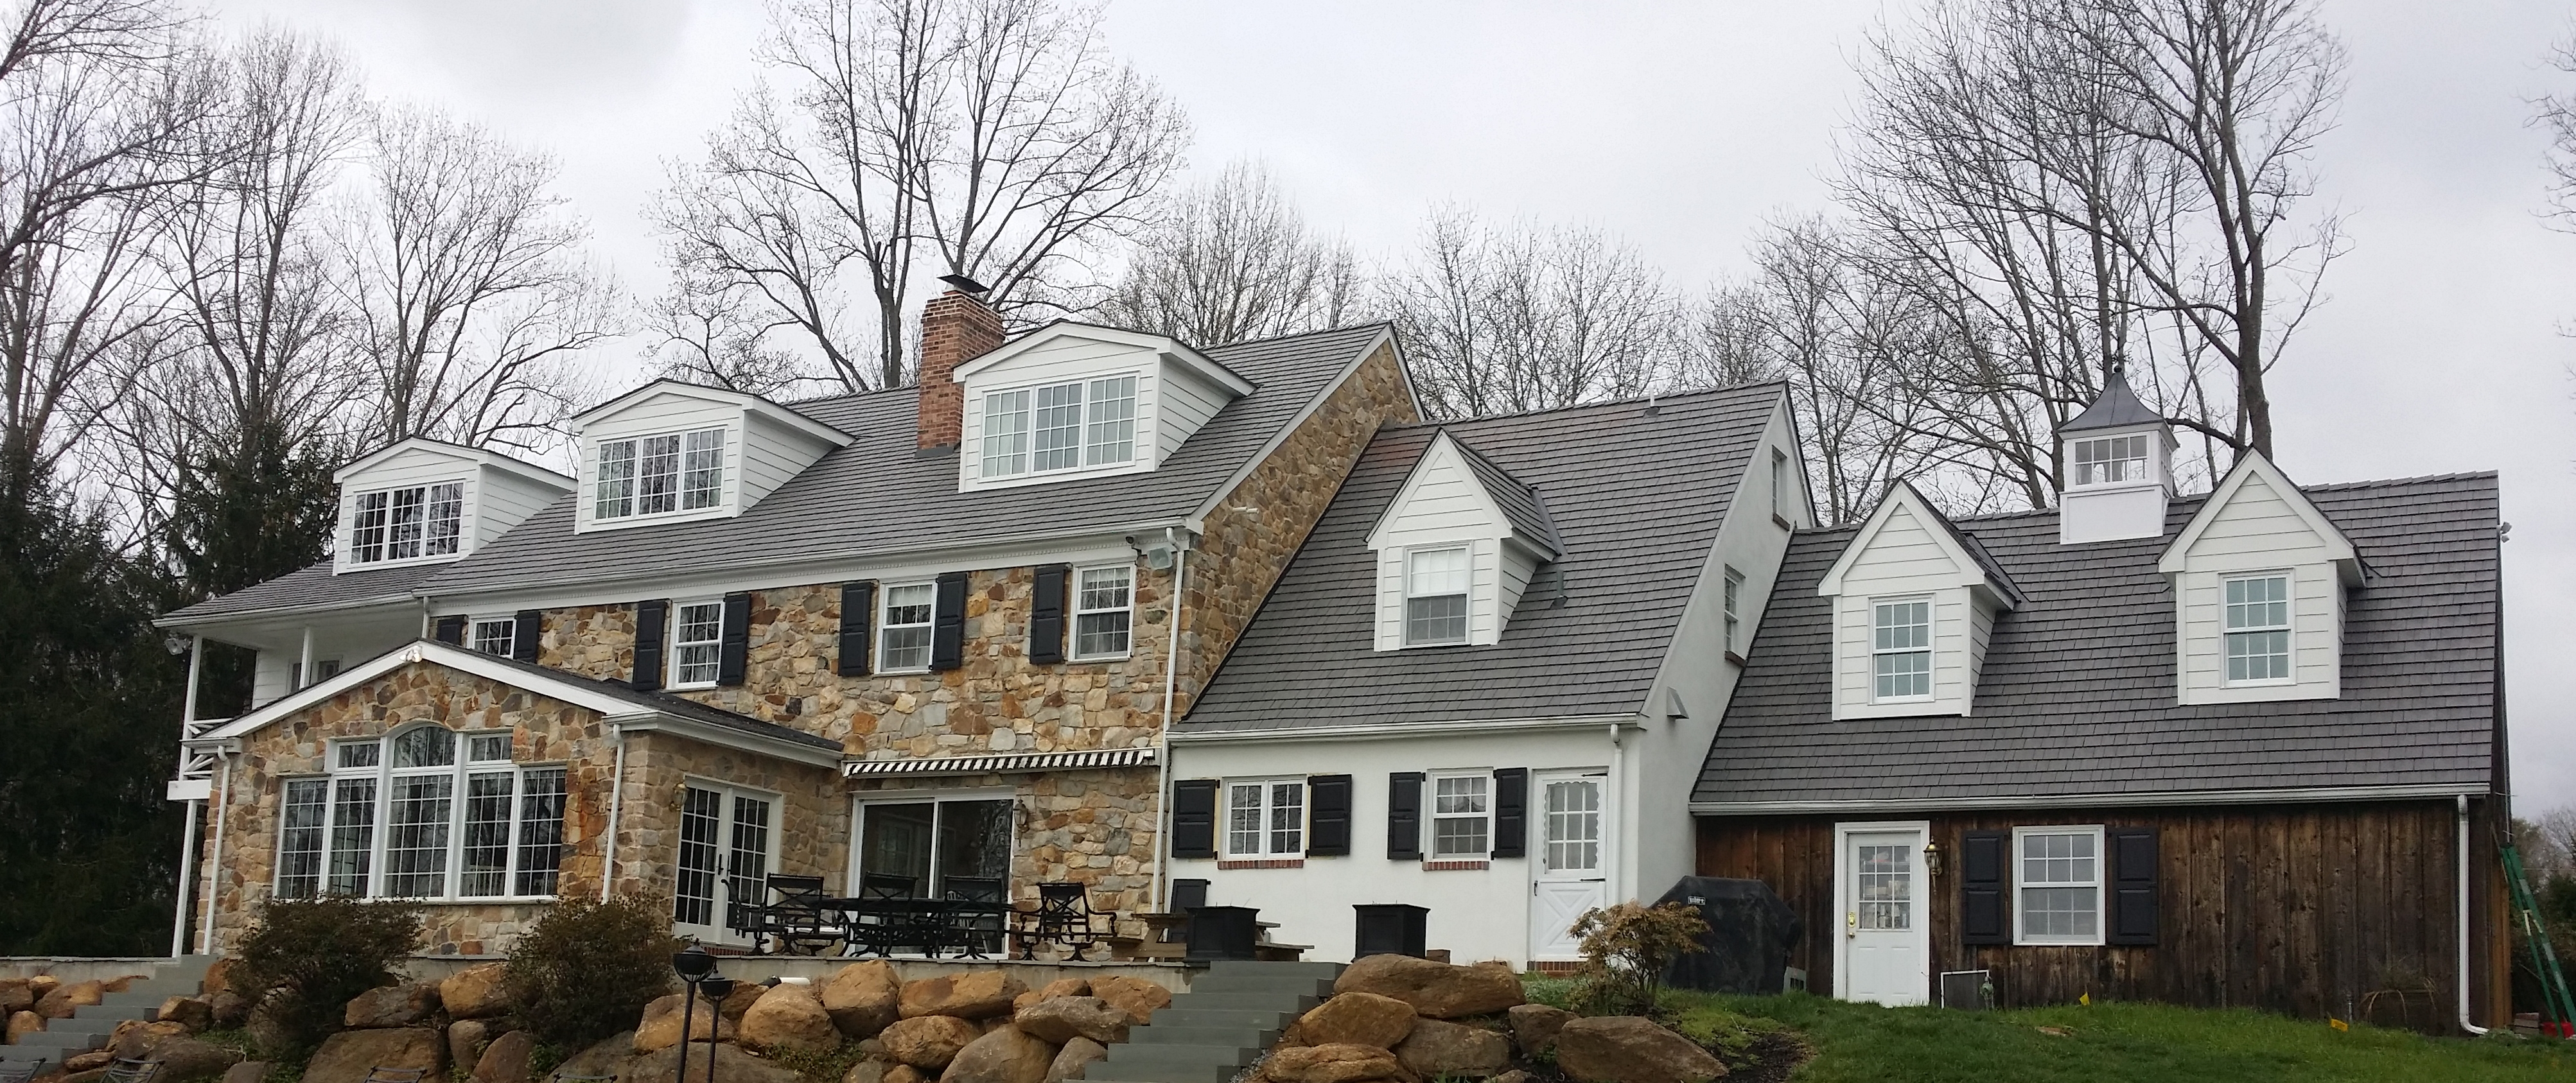 Quality One Roofing, Inc image 10